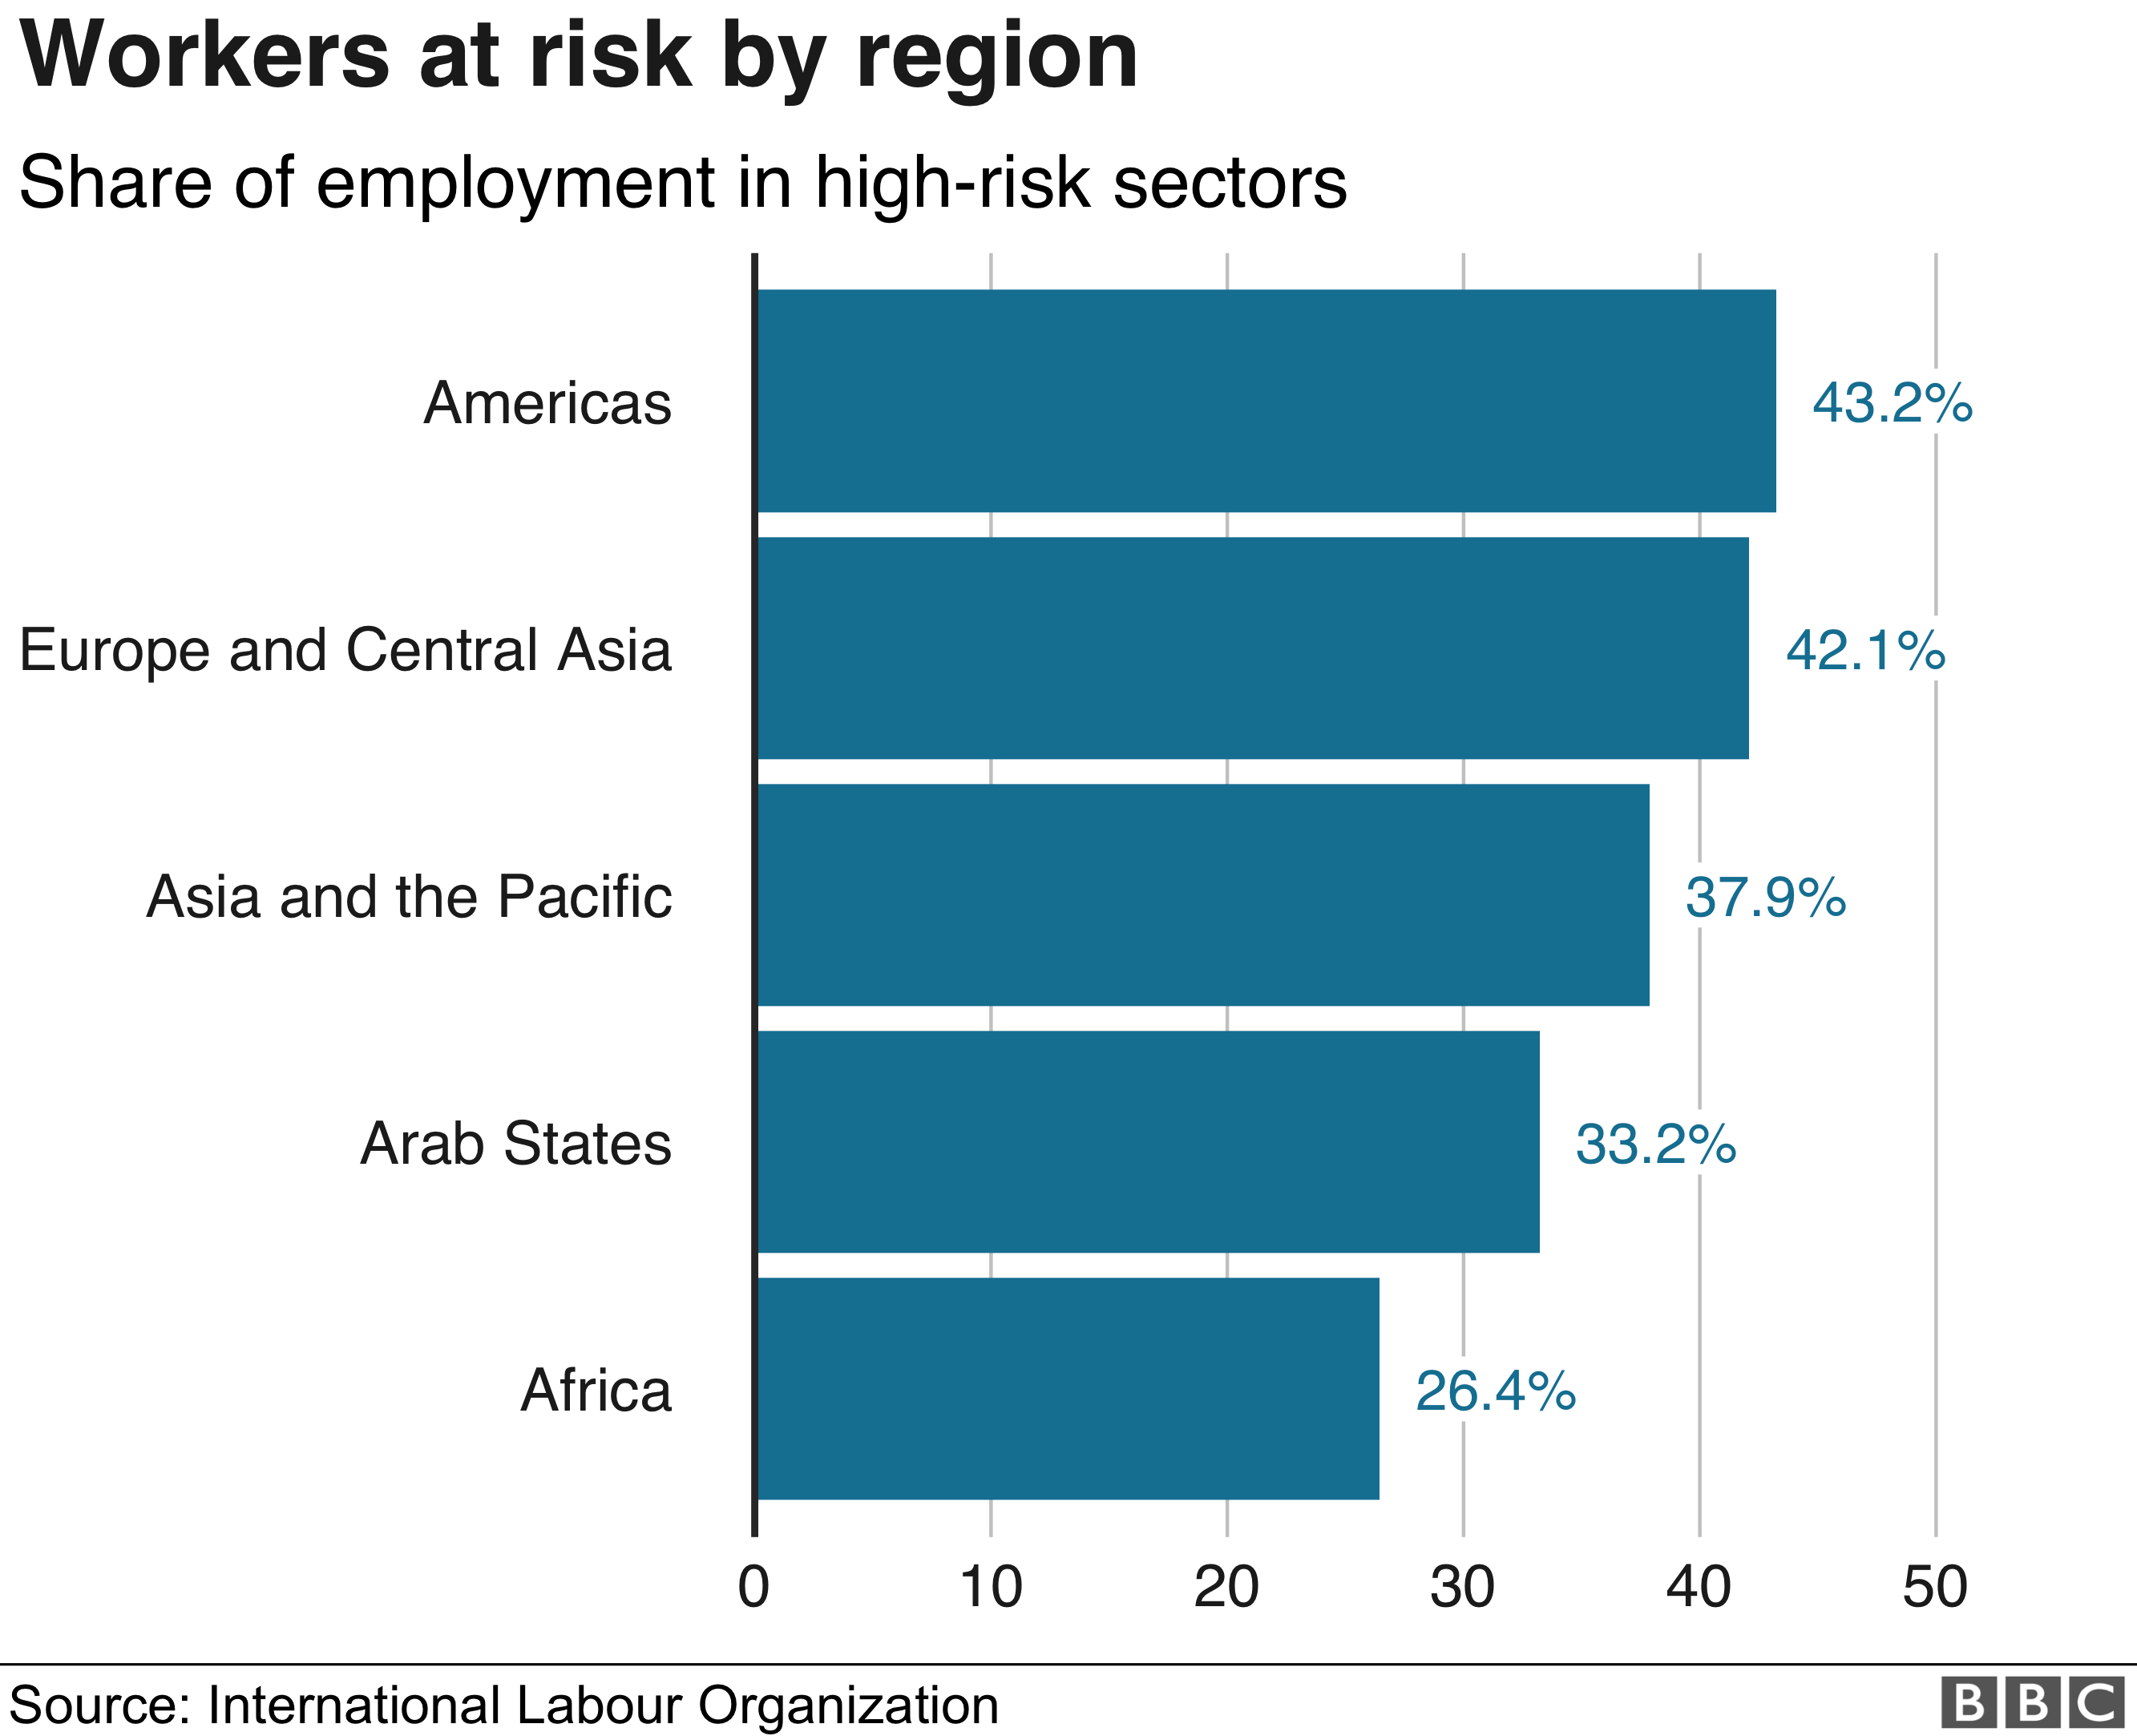 Workers at risk by region bar chart